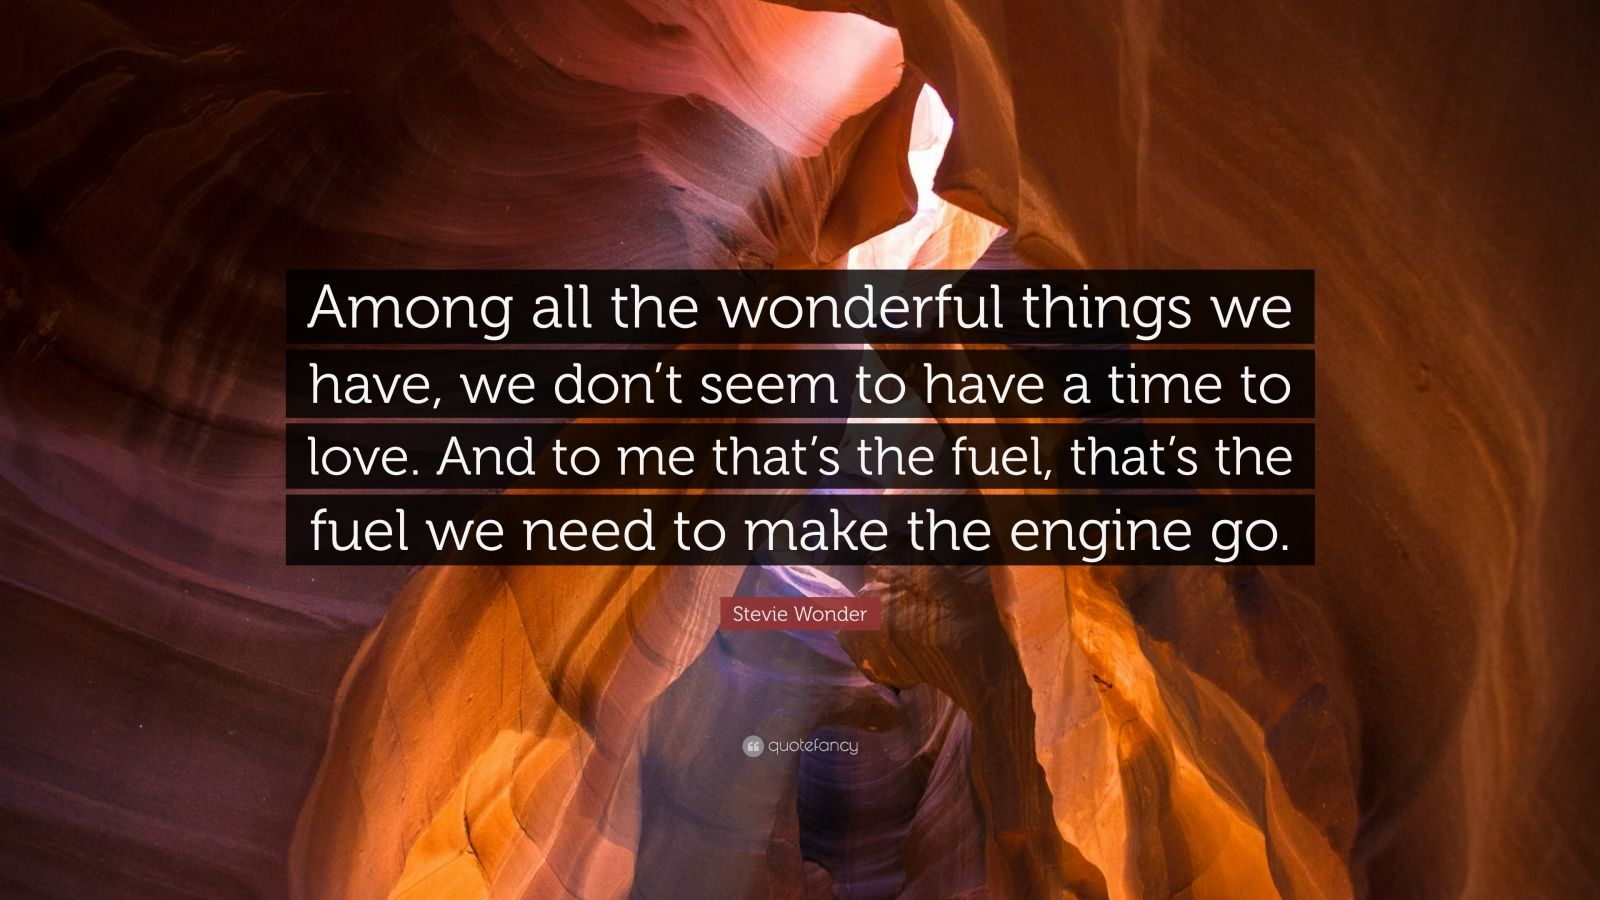 """Stevie Wonder Quote: """"Among all the wonderful things we have, we don't seem to have a time to love. And to me that's the fuel, that's the fuel we need to make the engine go."""""""